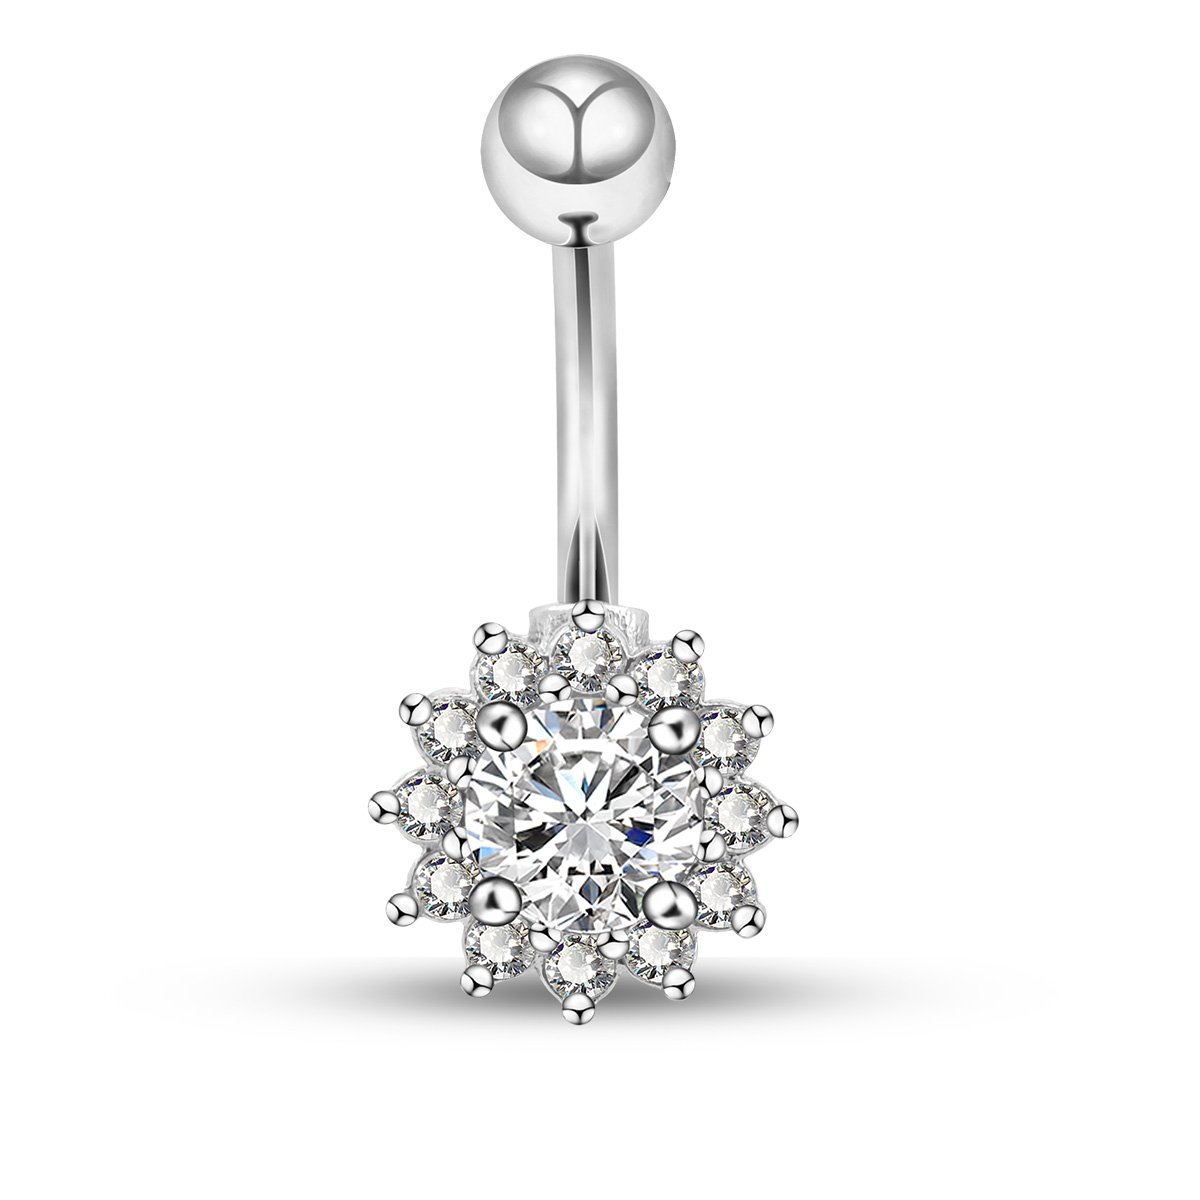 OUFER 14G Surgical Steel Belly Button Rings Clear Flower Cubic Zirconia Navel Rings